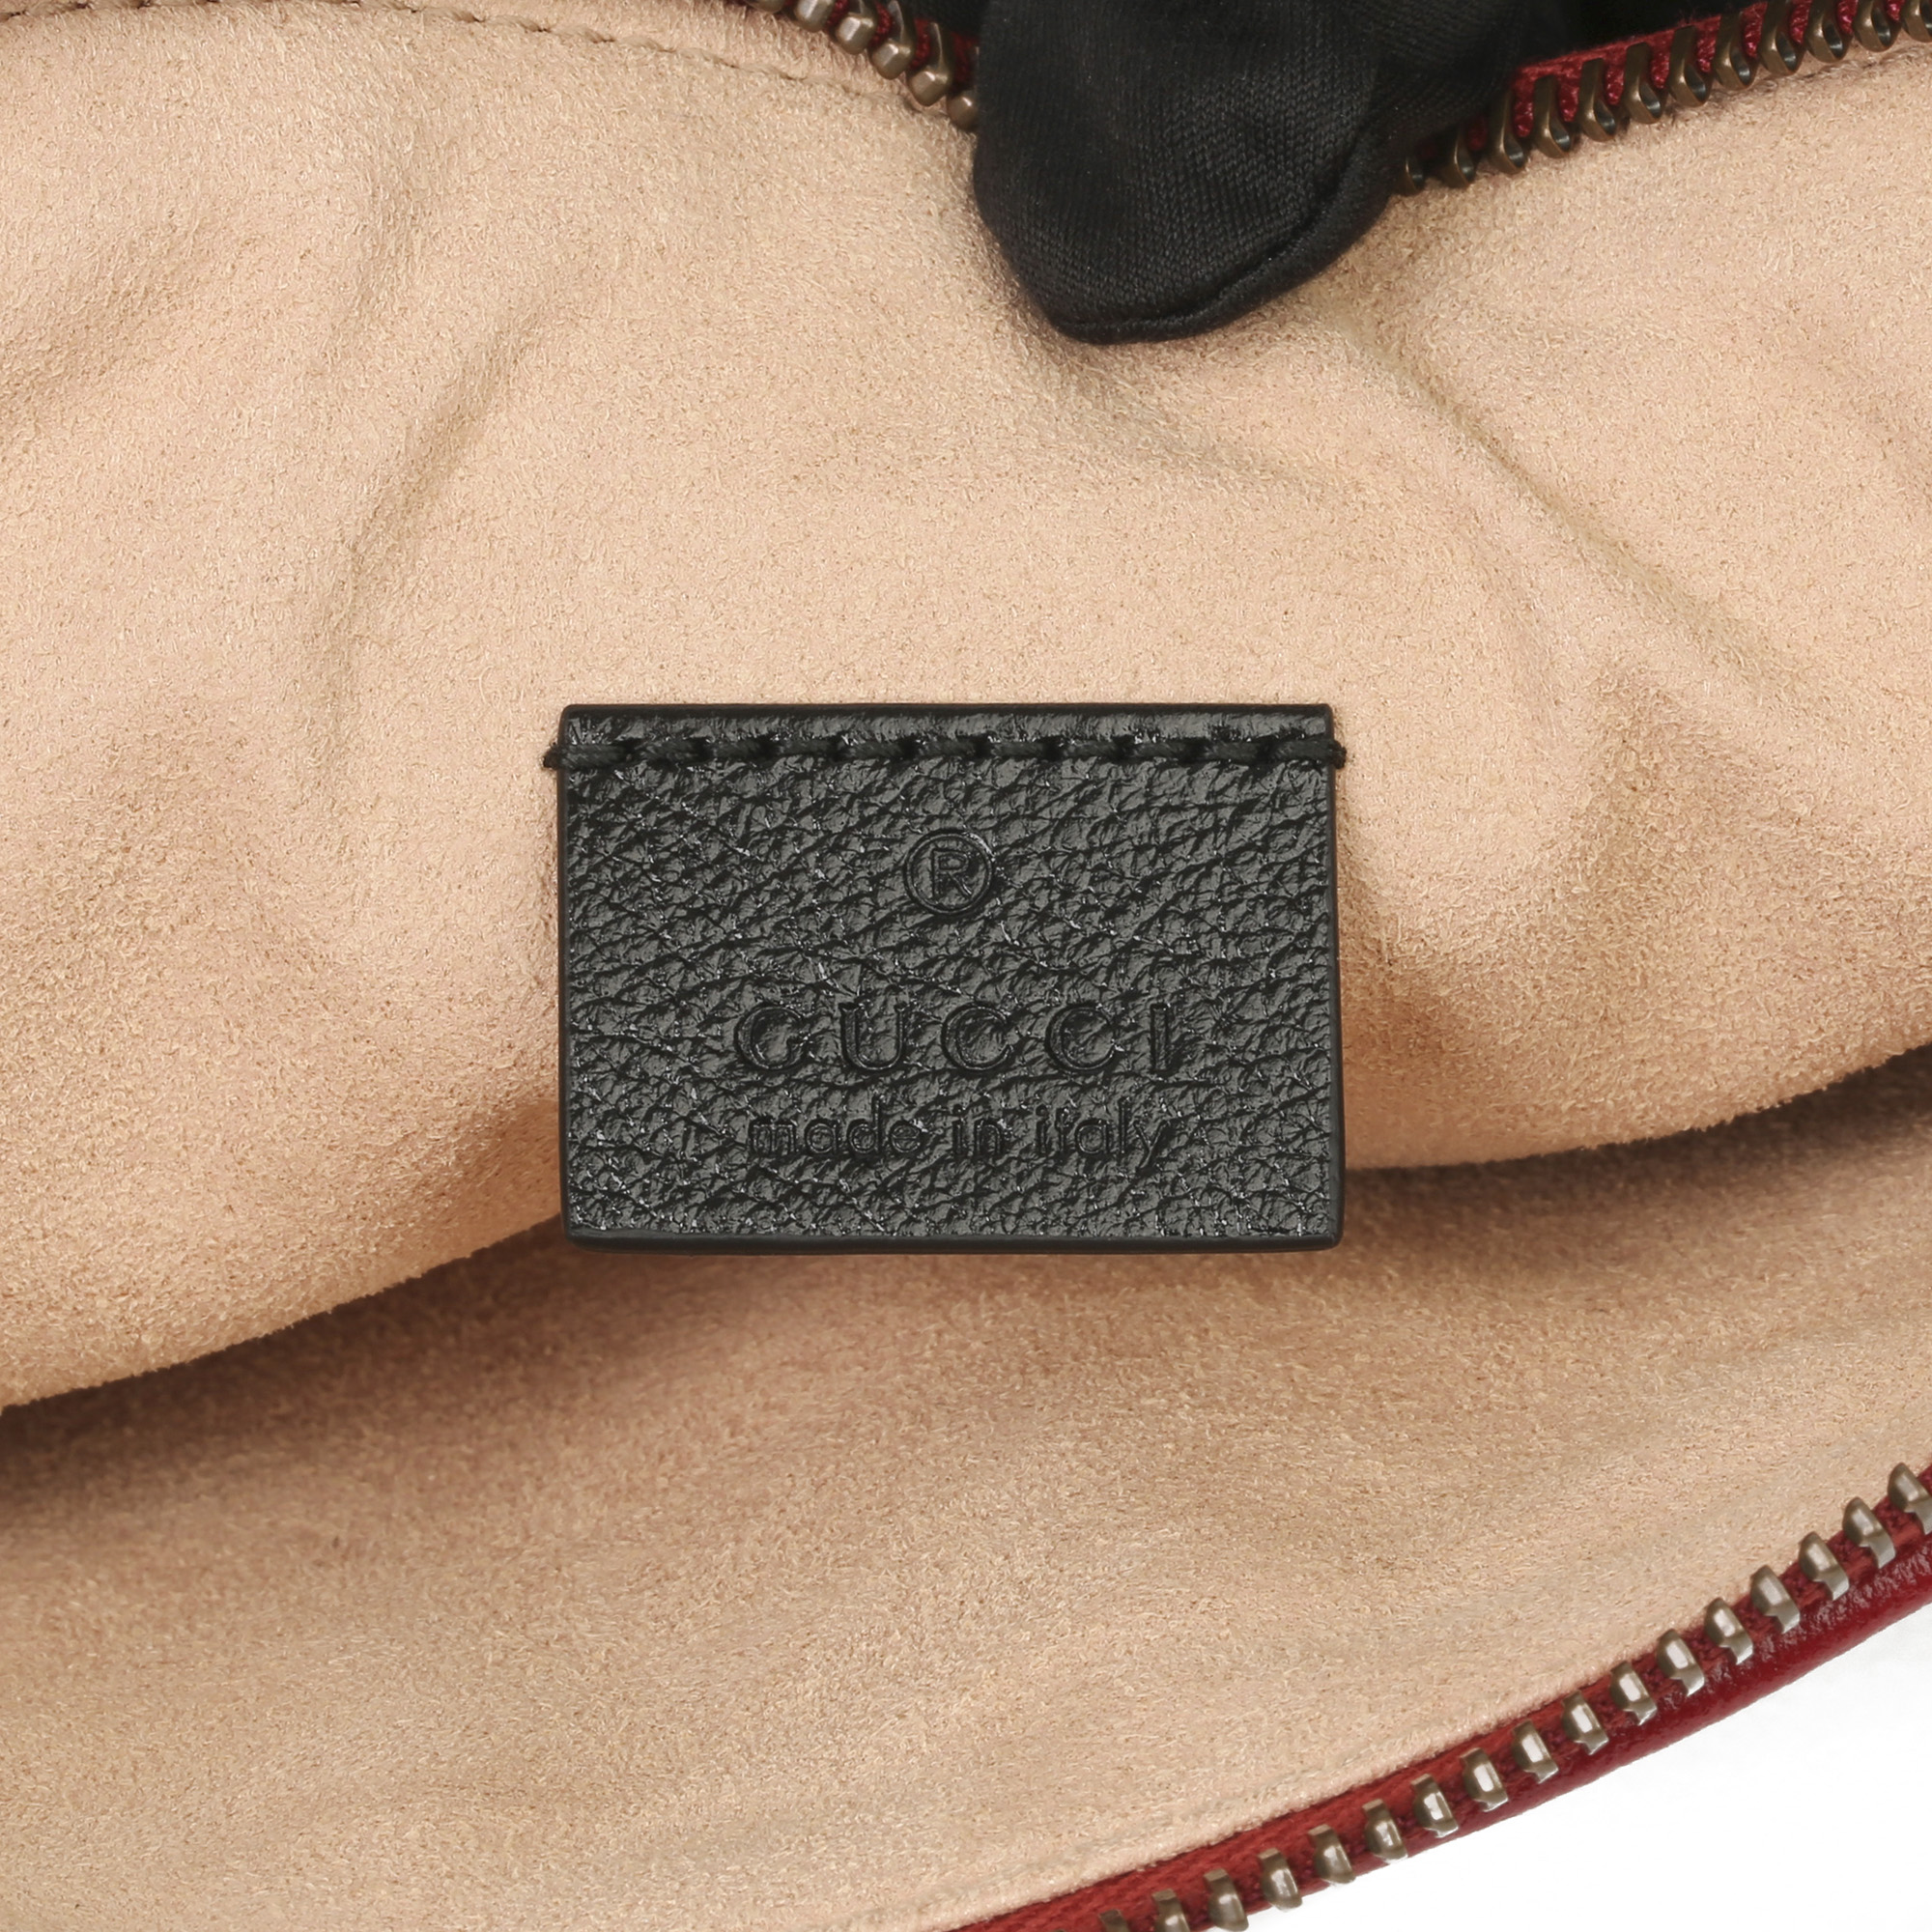 Gucci Black, Cream & Red Diagonal Quilted Aged Calfskin Leather Marmont Pouch - Image 5 of 11